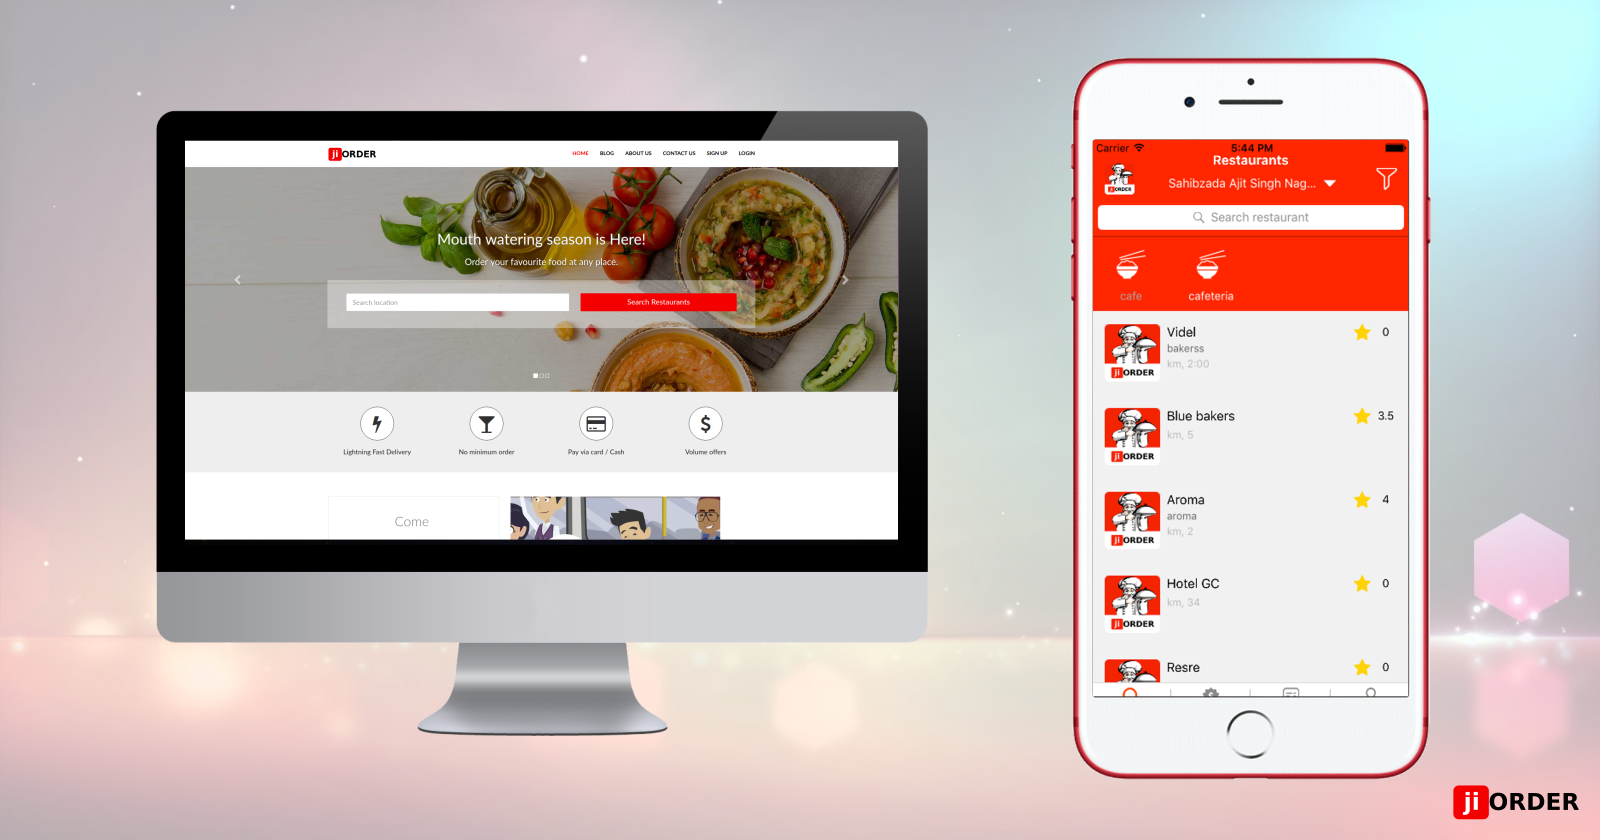 jiOrder Overrules the Offline Food Industry